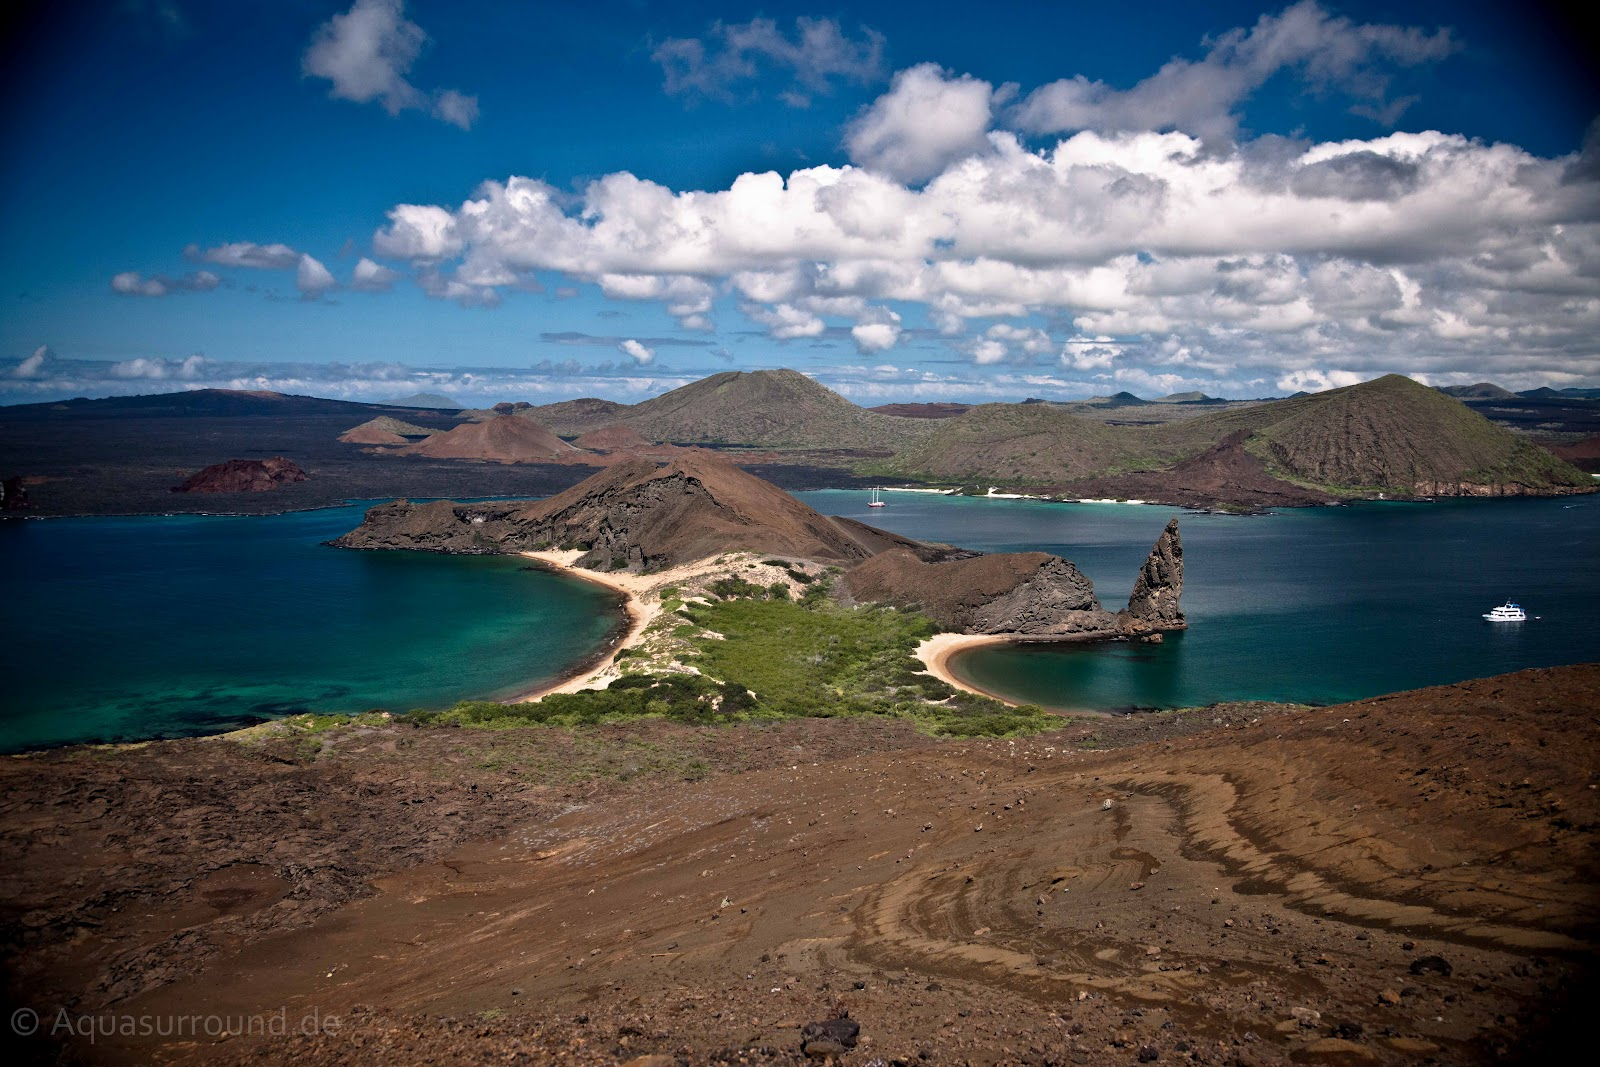 a geography of galapagos Galapagos geography the galapagos islands are an archipelago of volcanic isles containing 13 primary islands, 6 smaller isles, and 107 islets and rocks the islands are made up of about 5,000 square miles (8,000 square kilometers) that spread across more than 28,000 square miles (45,000 square kilometers) of south pacific ocean.